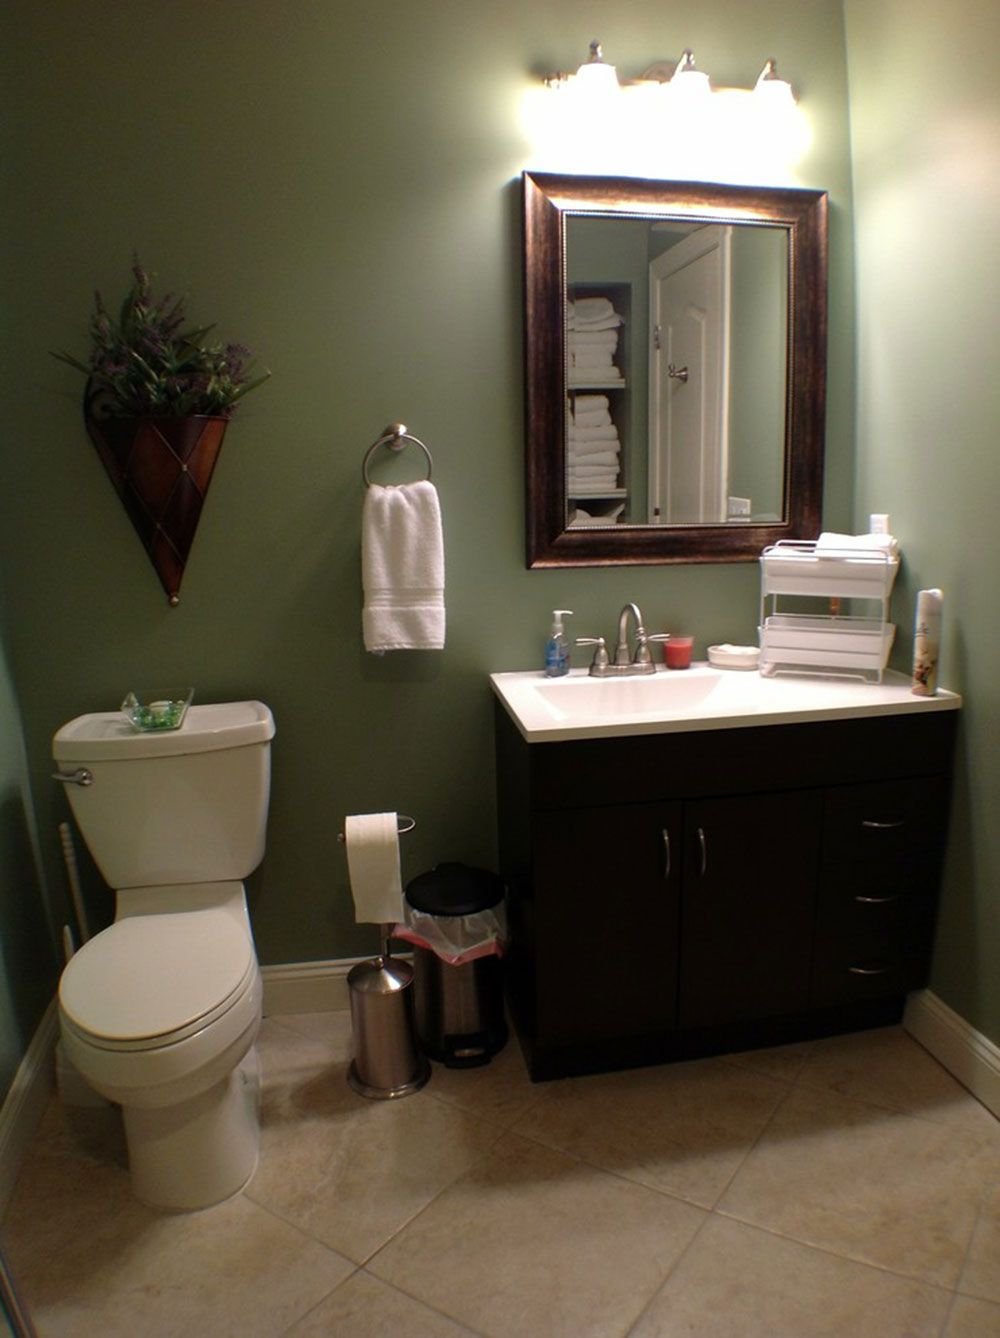 How Much Does It Cost To Add A Bathroom In The Basement Answered